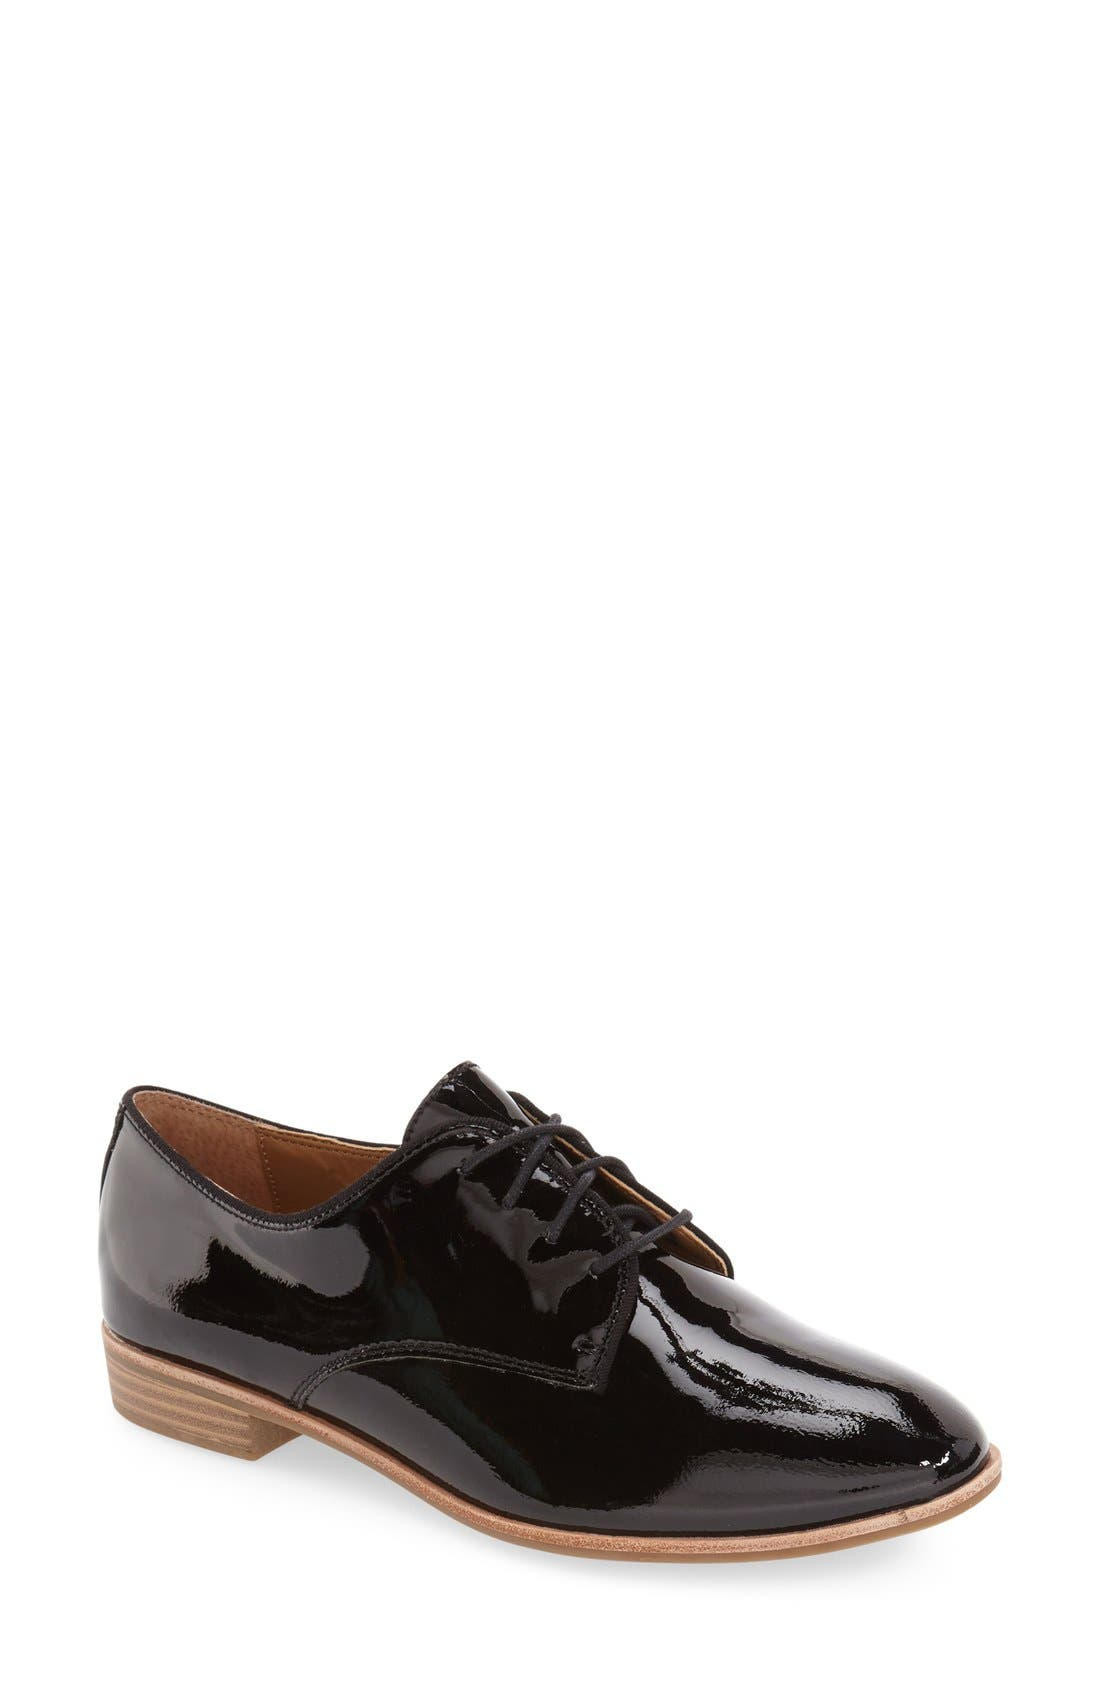 'Ella' Leather Oxford,                         Main,                         color, 001